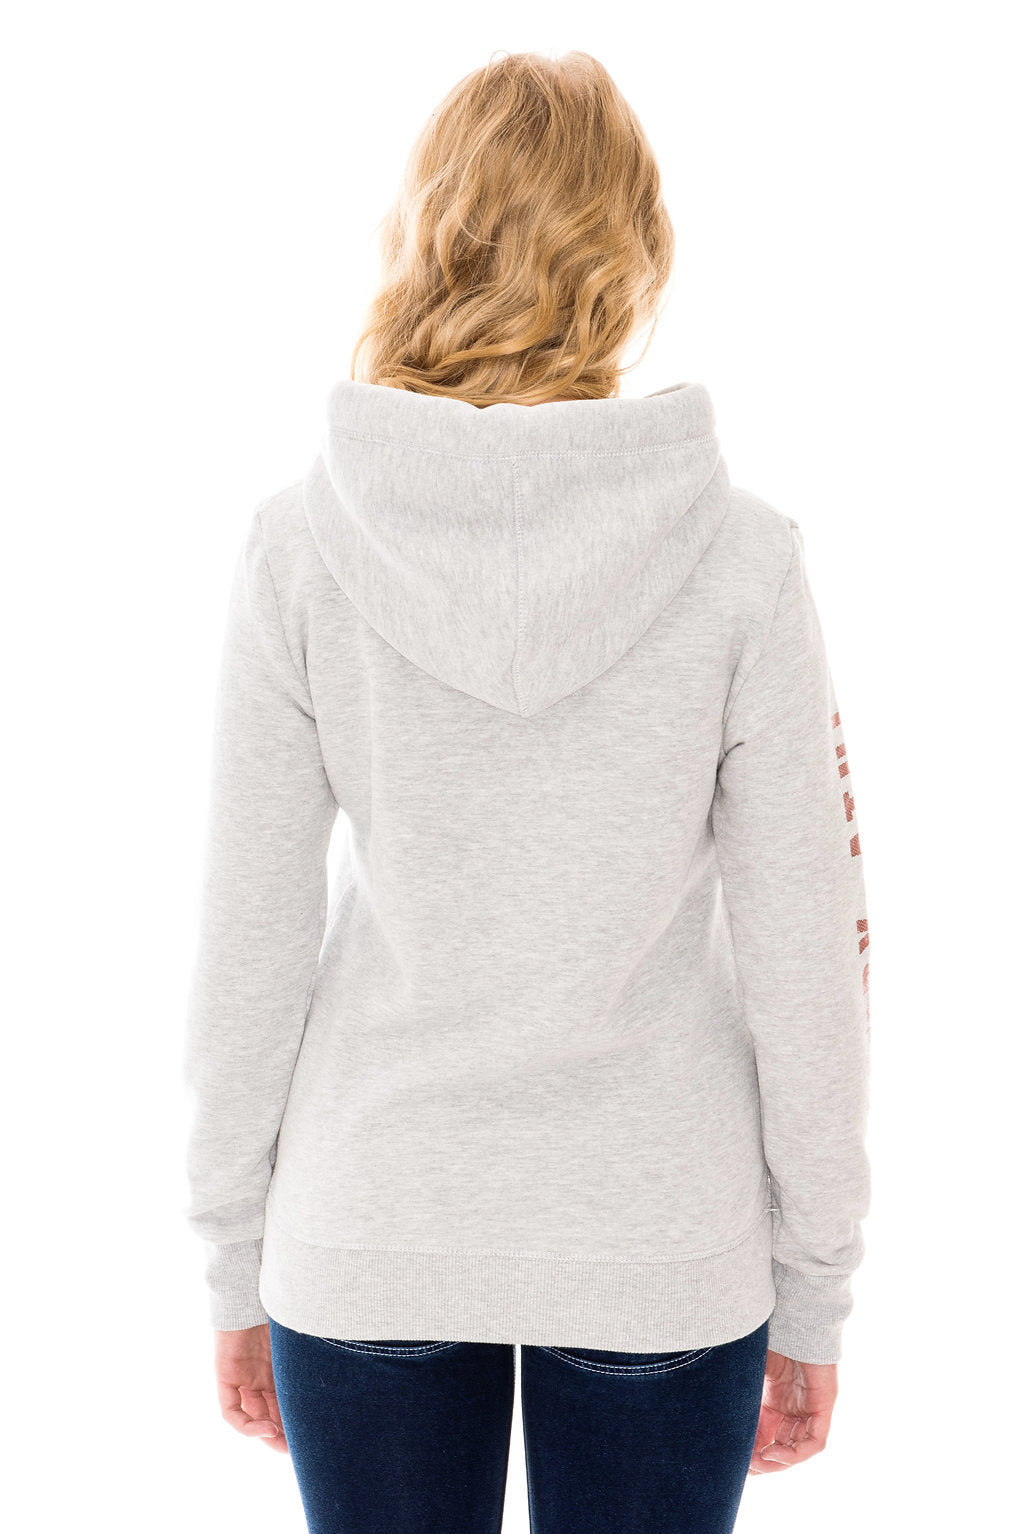 SUPERDRY TRACK & FIELD HOODIE - TRACK STAR GREY MARL